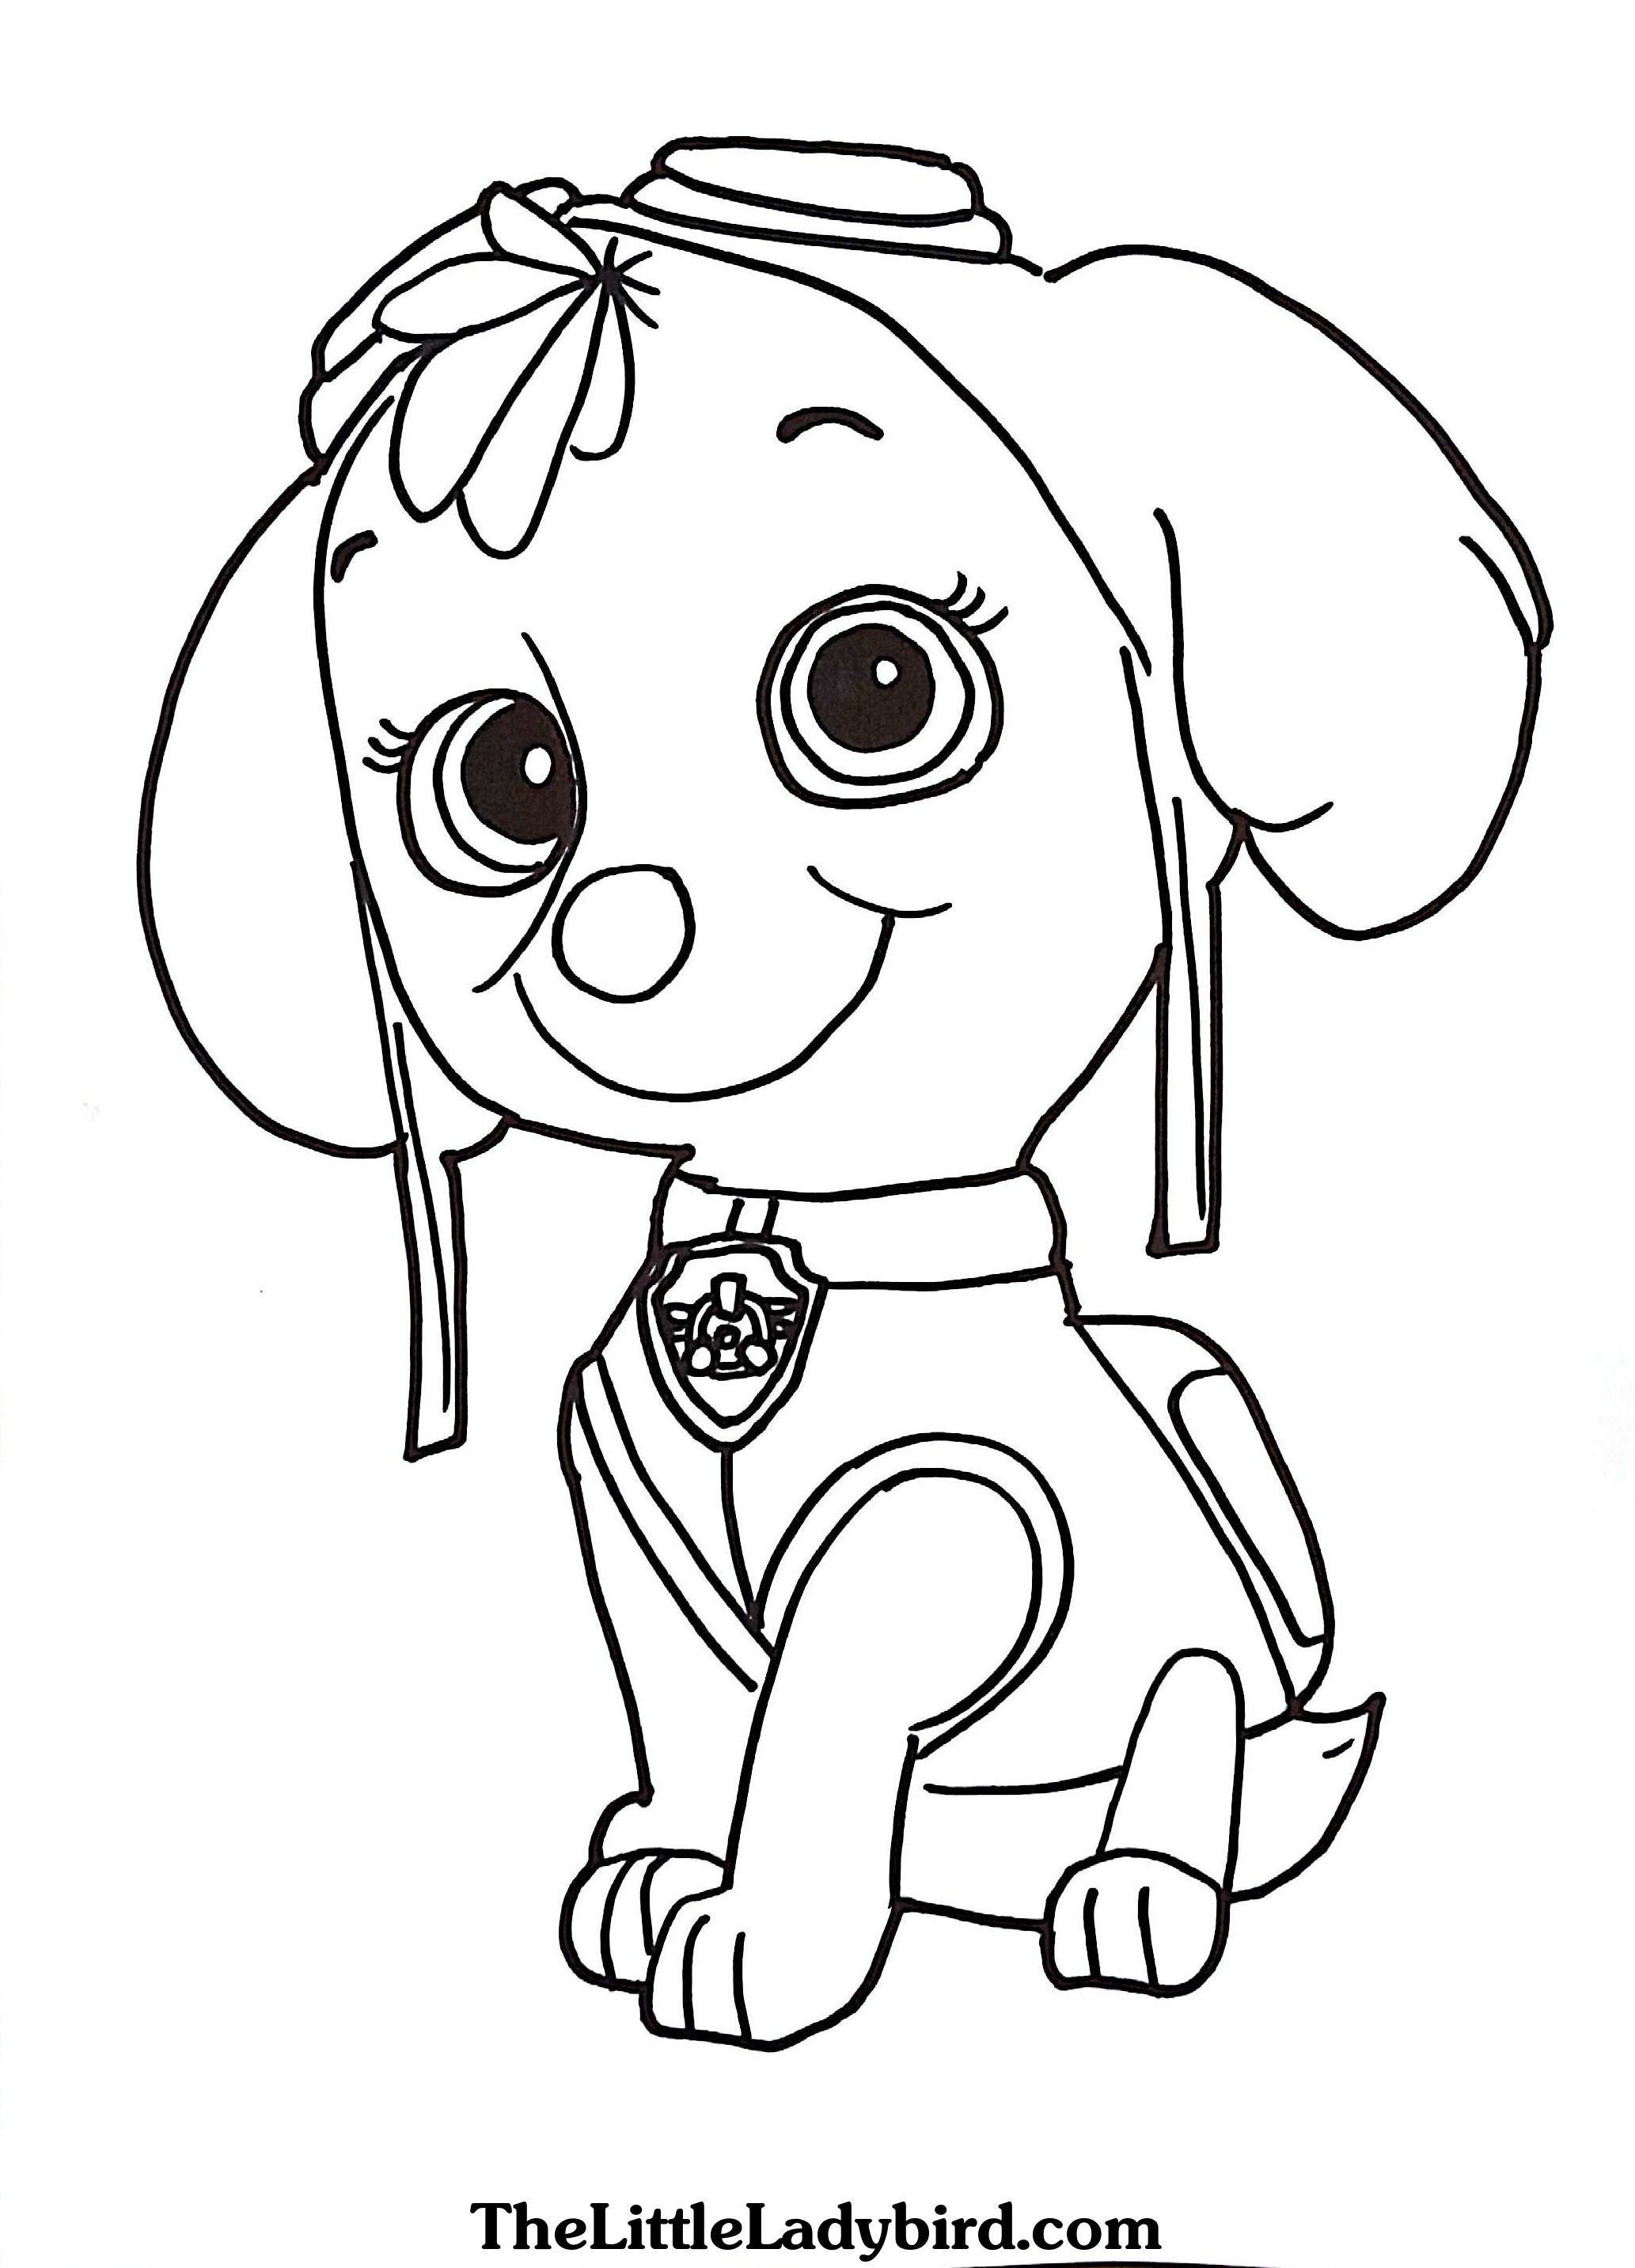 Paw Patrol Coloring Pages Marshall Marshall Paw Patrol Coloring Page At Getdrawings Free For